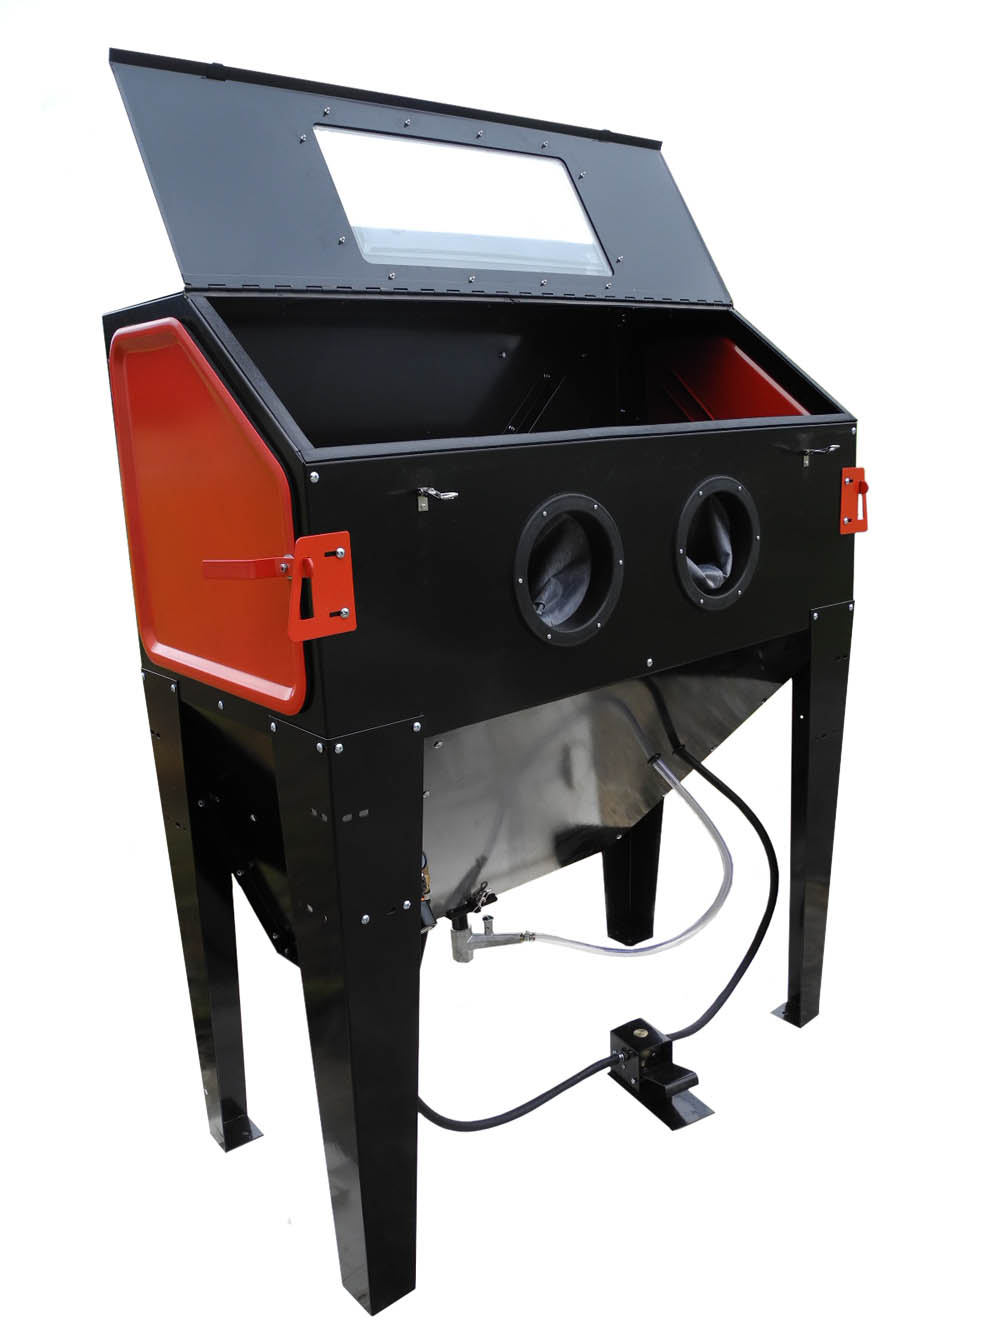 Sand Blaster Cabinet New Redline Re48 Elite Series Abrasive Sand Blaster Cabinet Glass